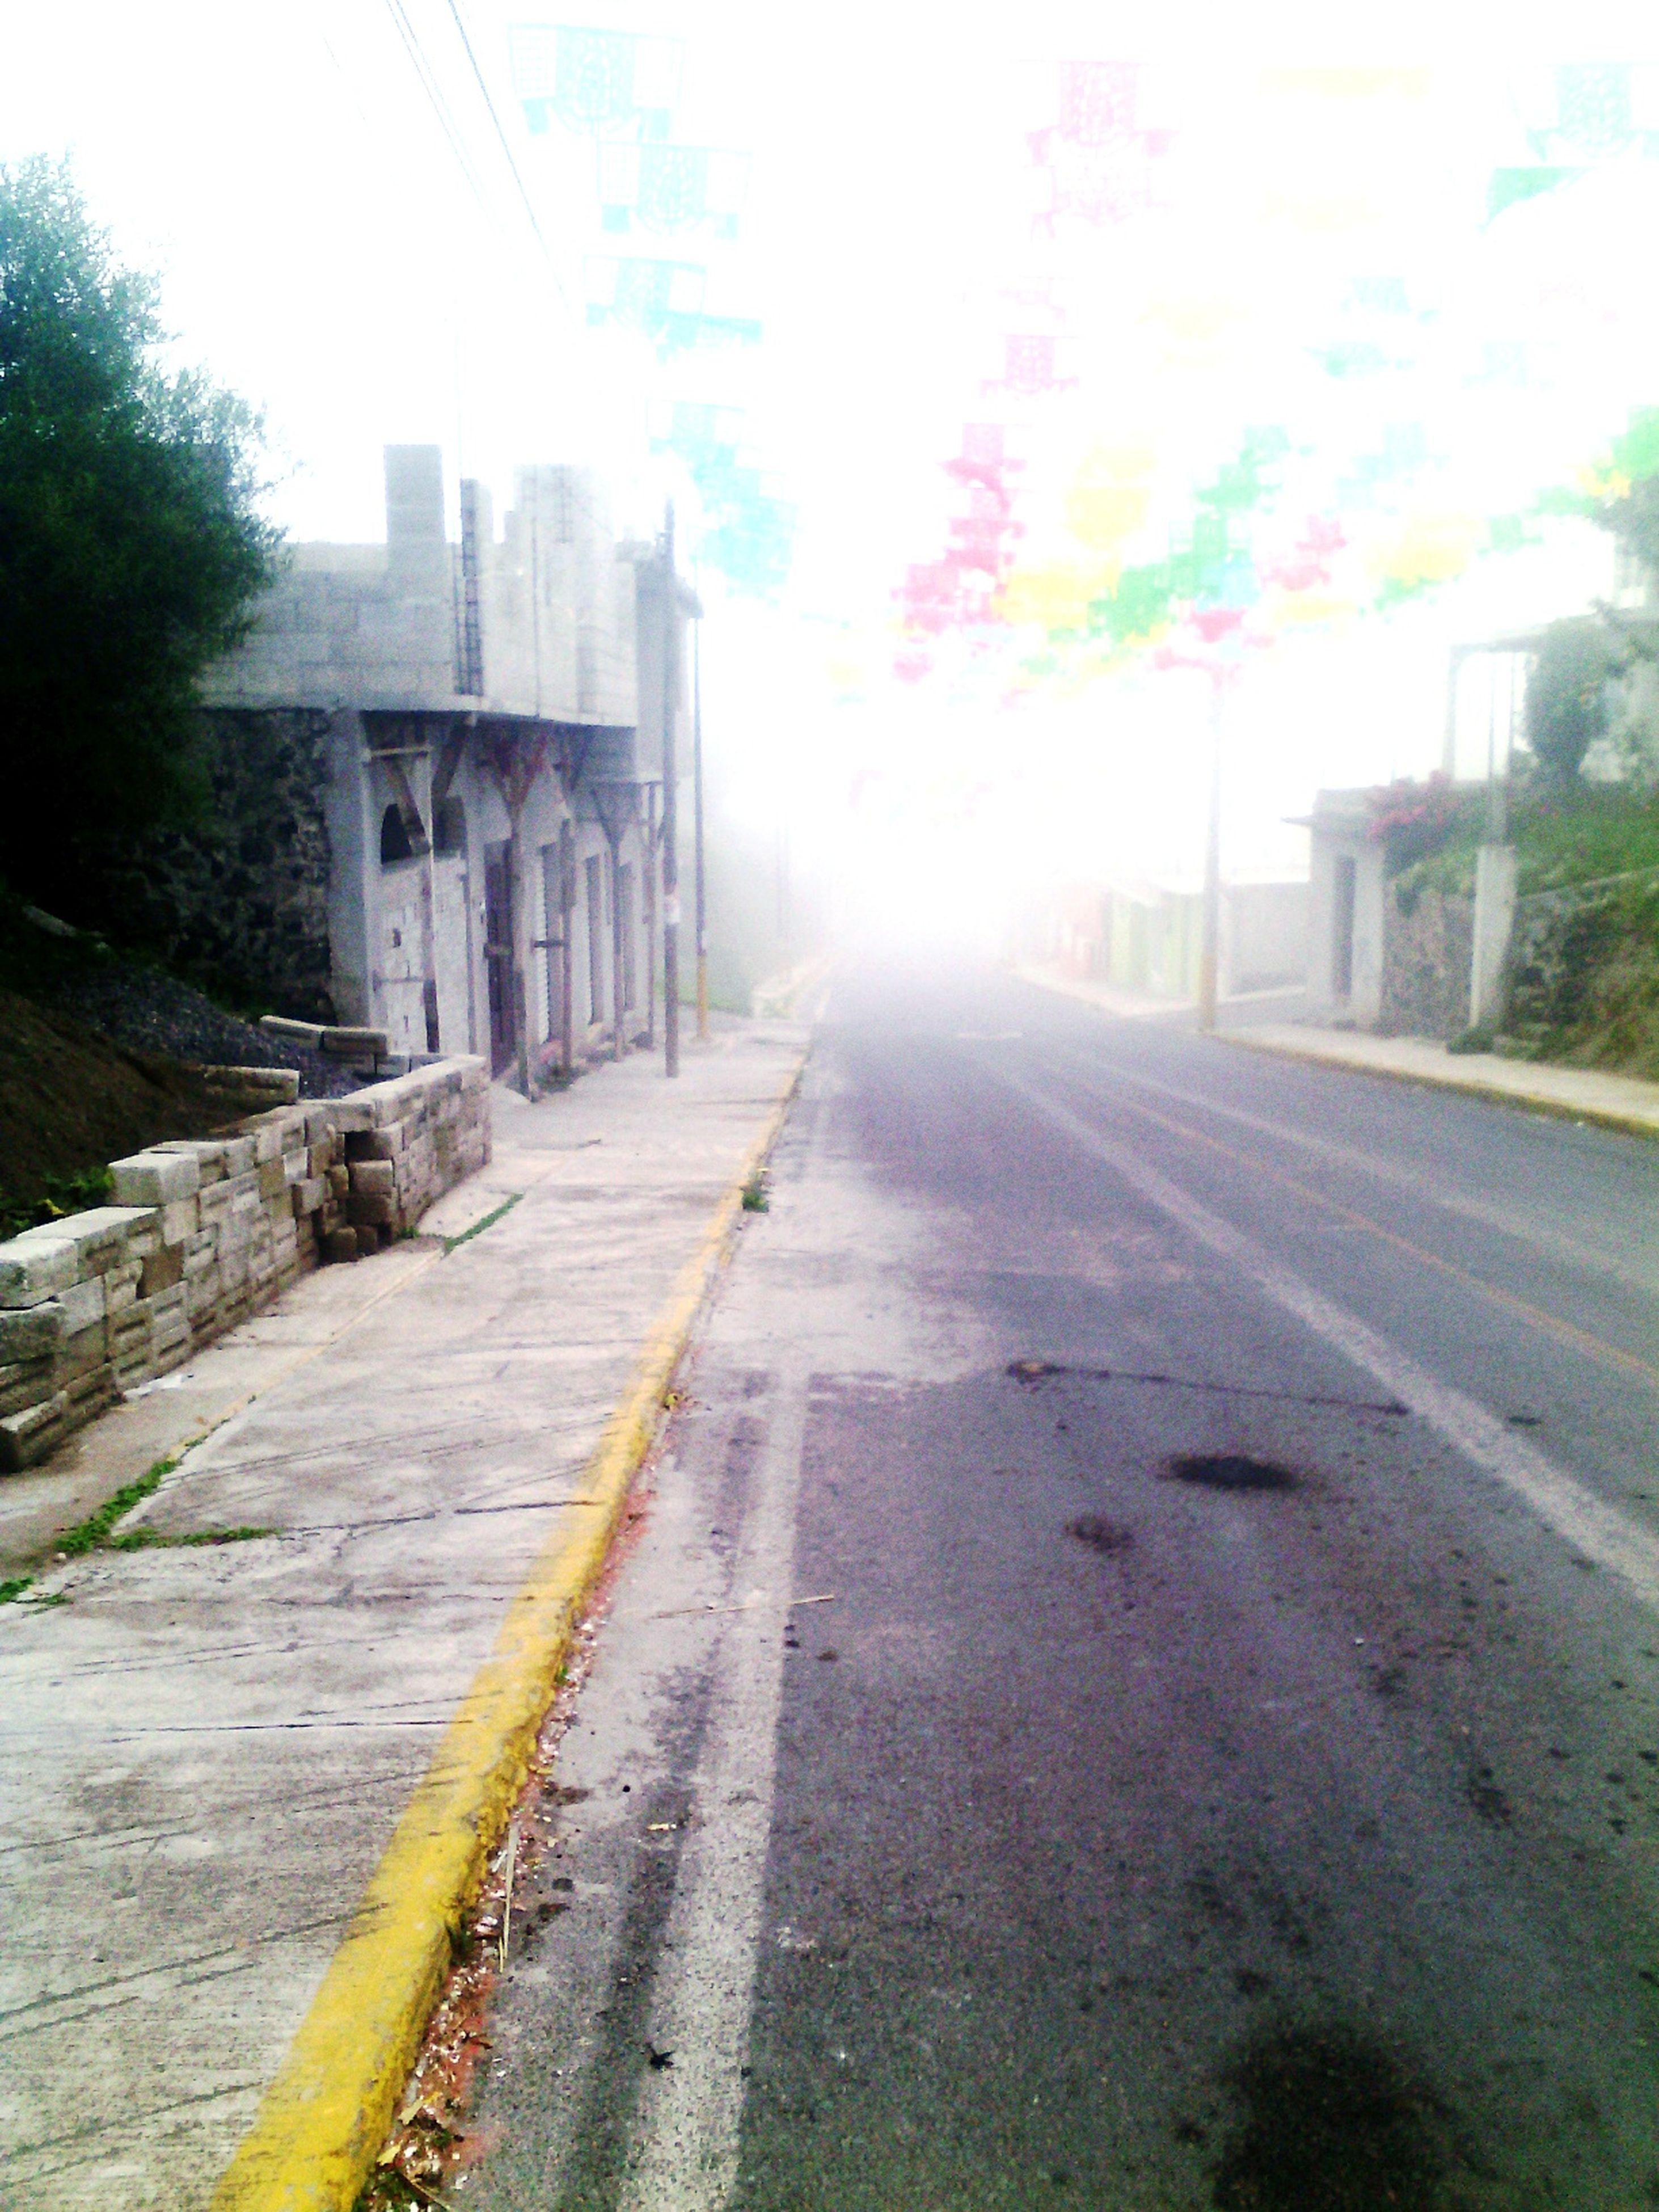 architecture, building exterior, built structure, city, street, road, transportation, road marking, the way forward, empty, long, outdoors, surface level, day, empty road, diminishing perspective, sky, narrow, lens flare, city life, no people, mist